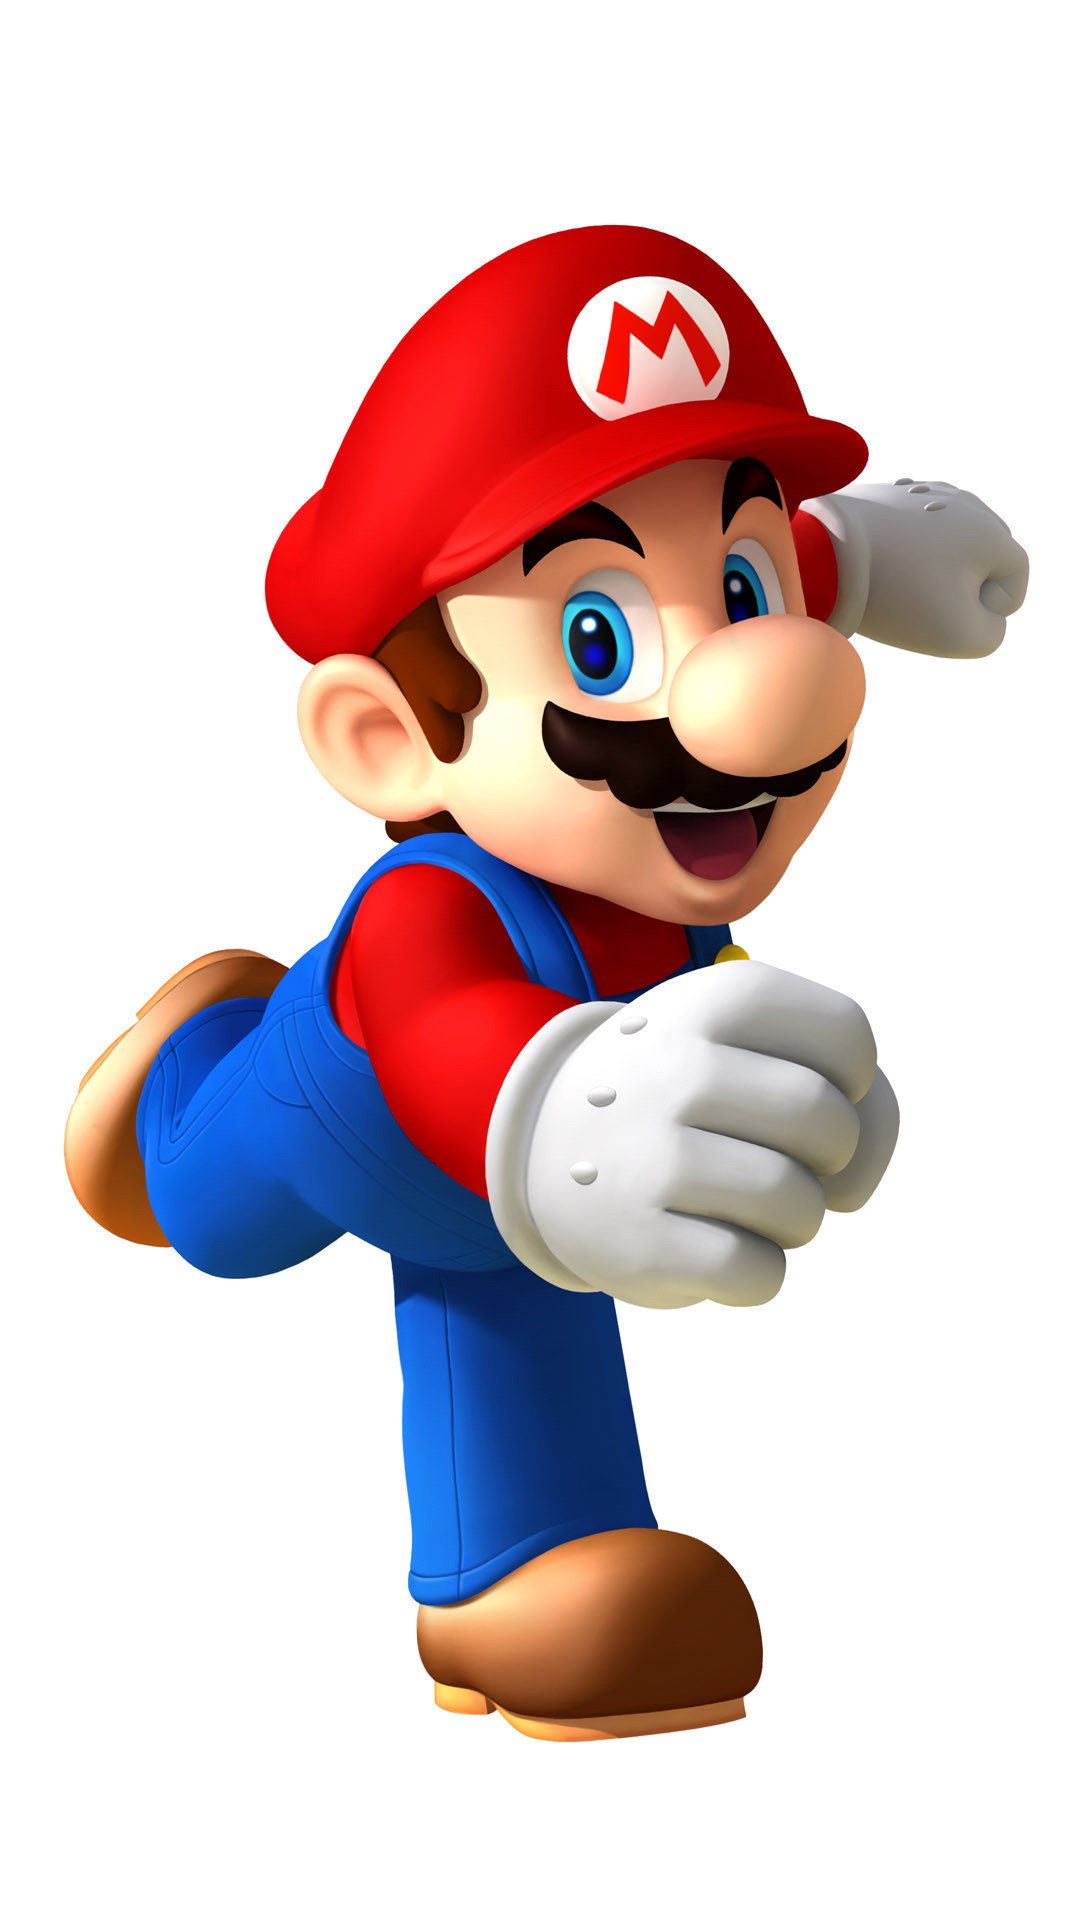 1080x1920 mario hd mobile iphone wallpaper